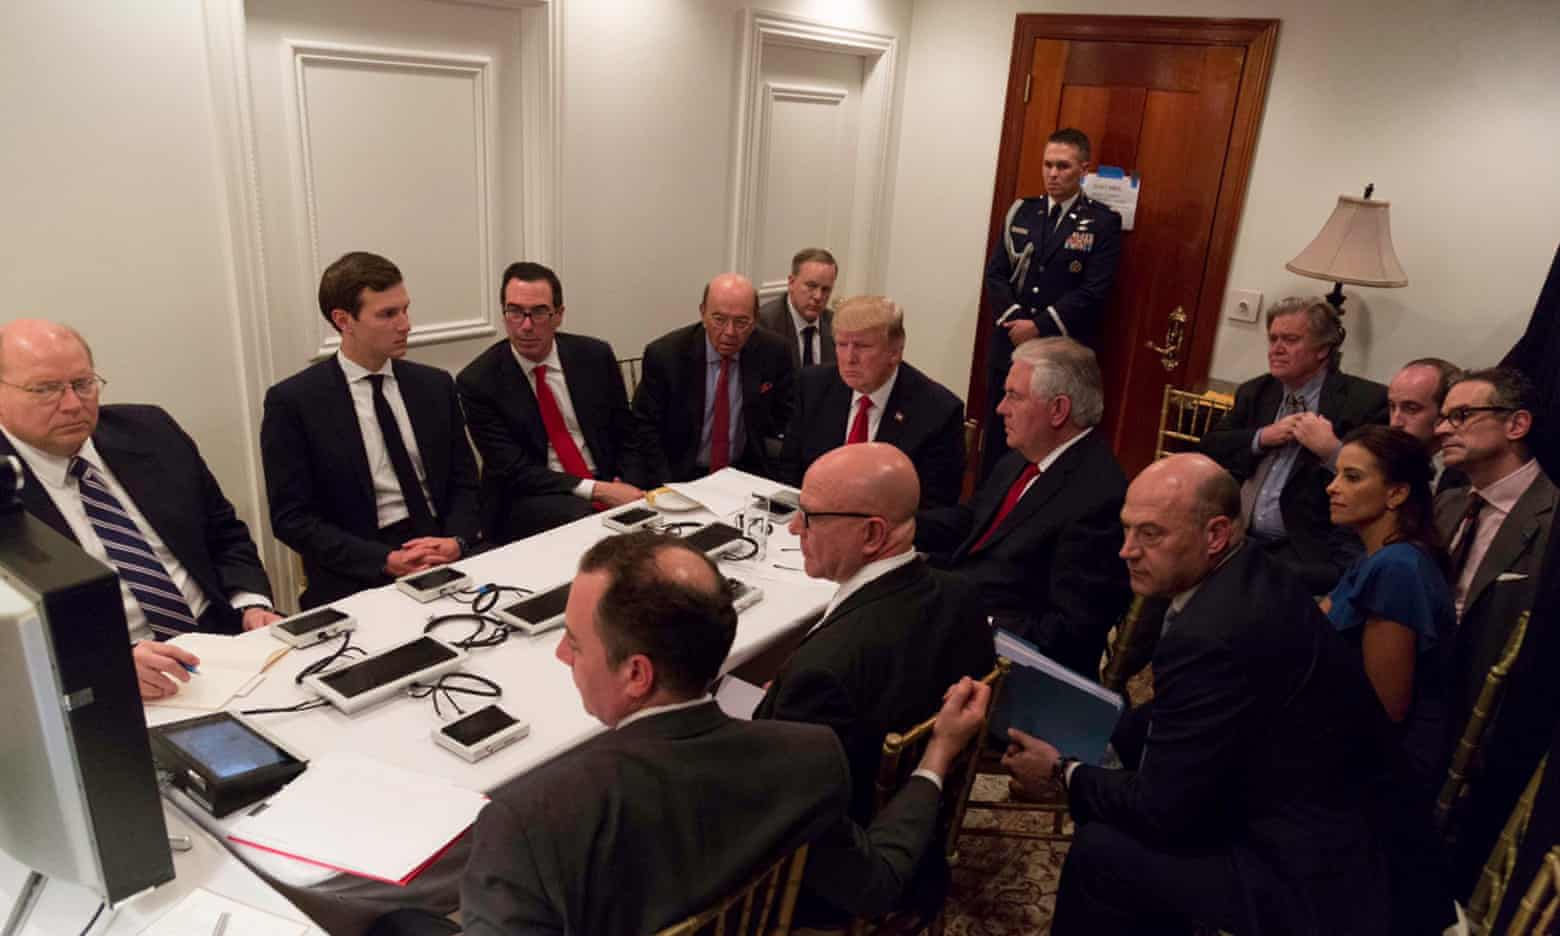 President Trump receives a briefing on Syria from his national security team while in Mar-a-Lago. Photograph taken 6 April immediately after the airstrike